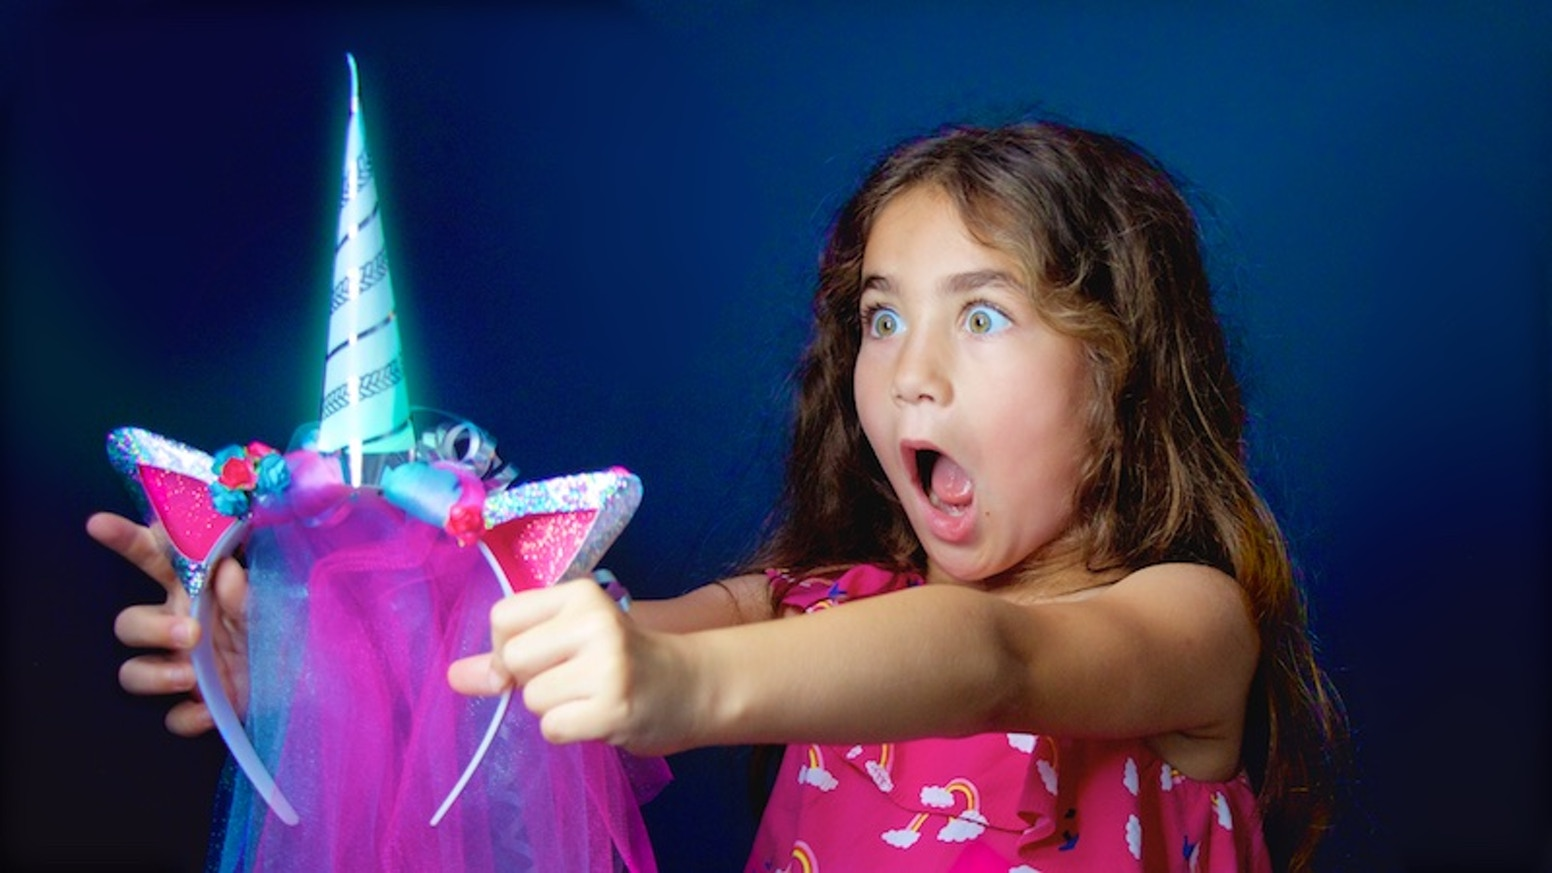 Learn 4 ways to add lights to your crafts by making a Light-Up Unicorn Headband, Wand, Tutu, and Bag. Ships in time for Halloween!